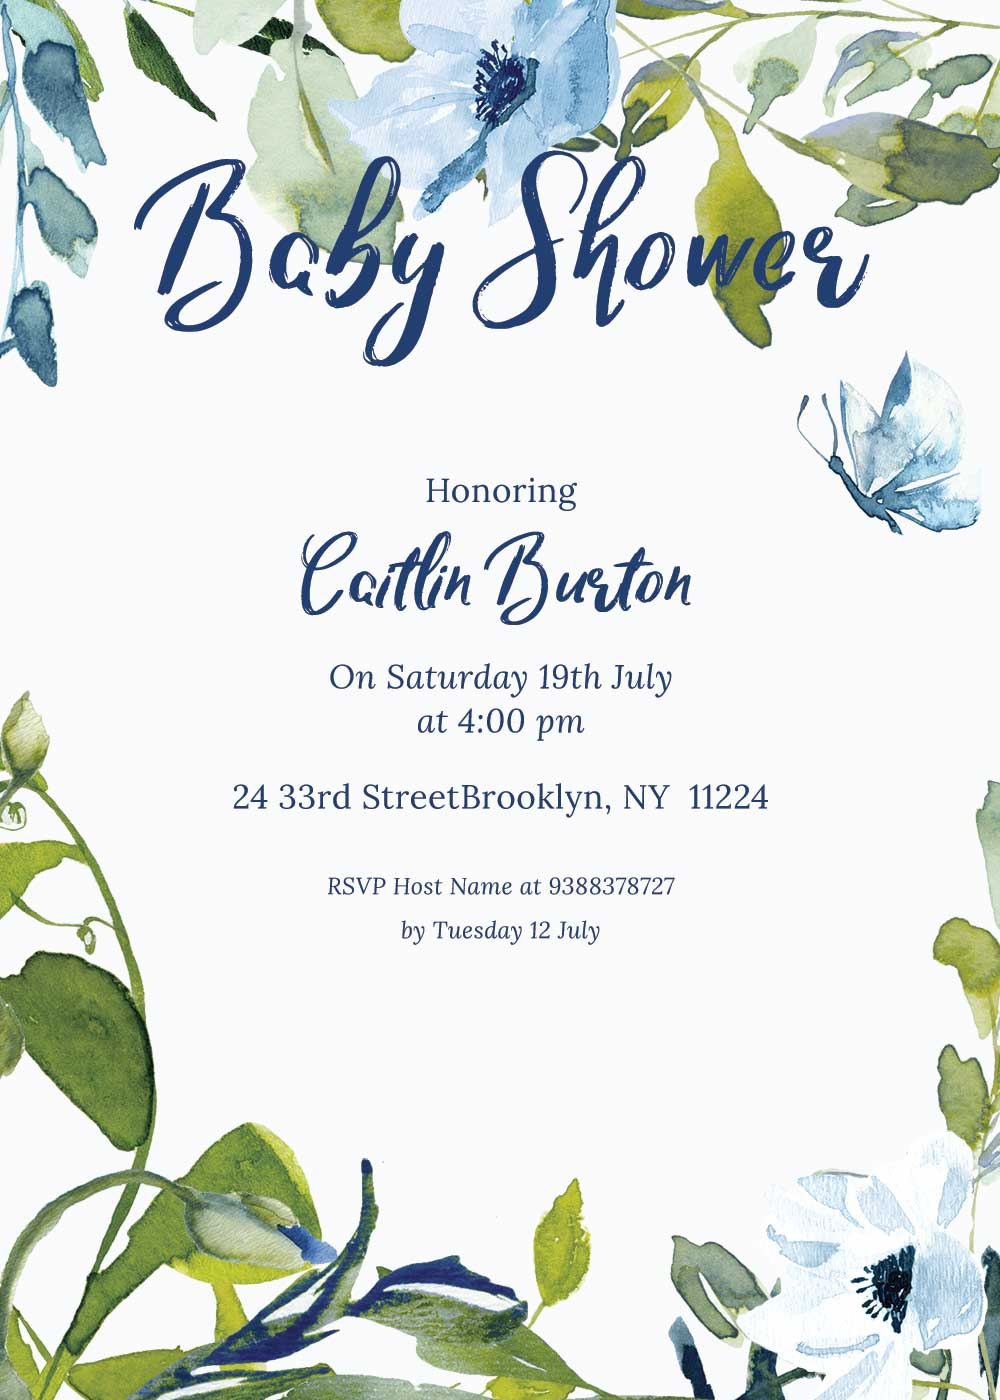 Baby shower invitations - Sky Theme